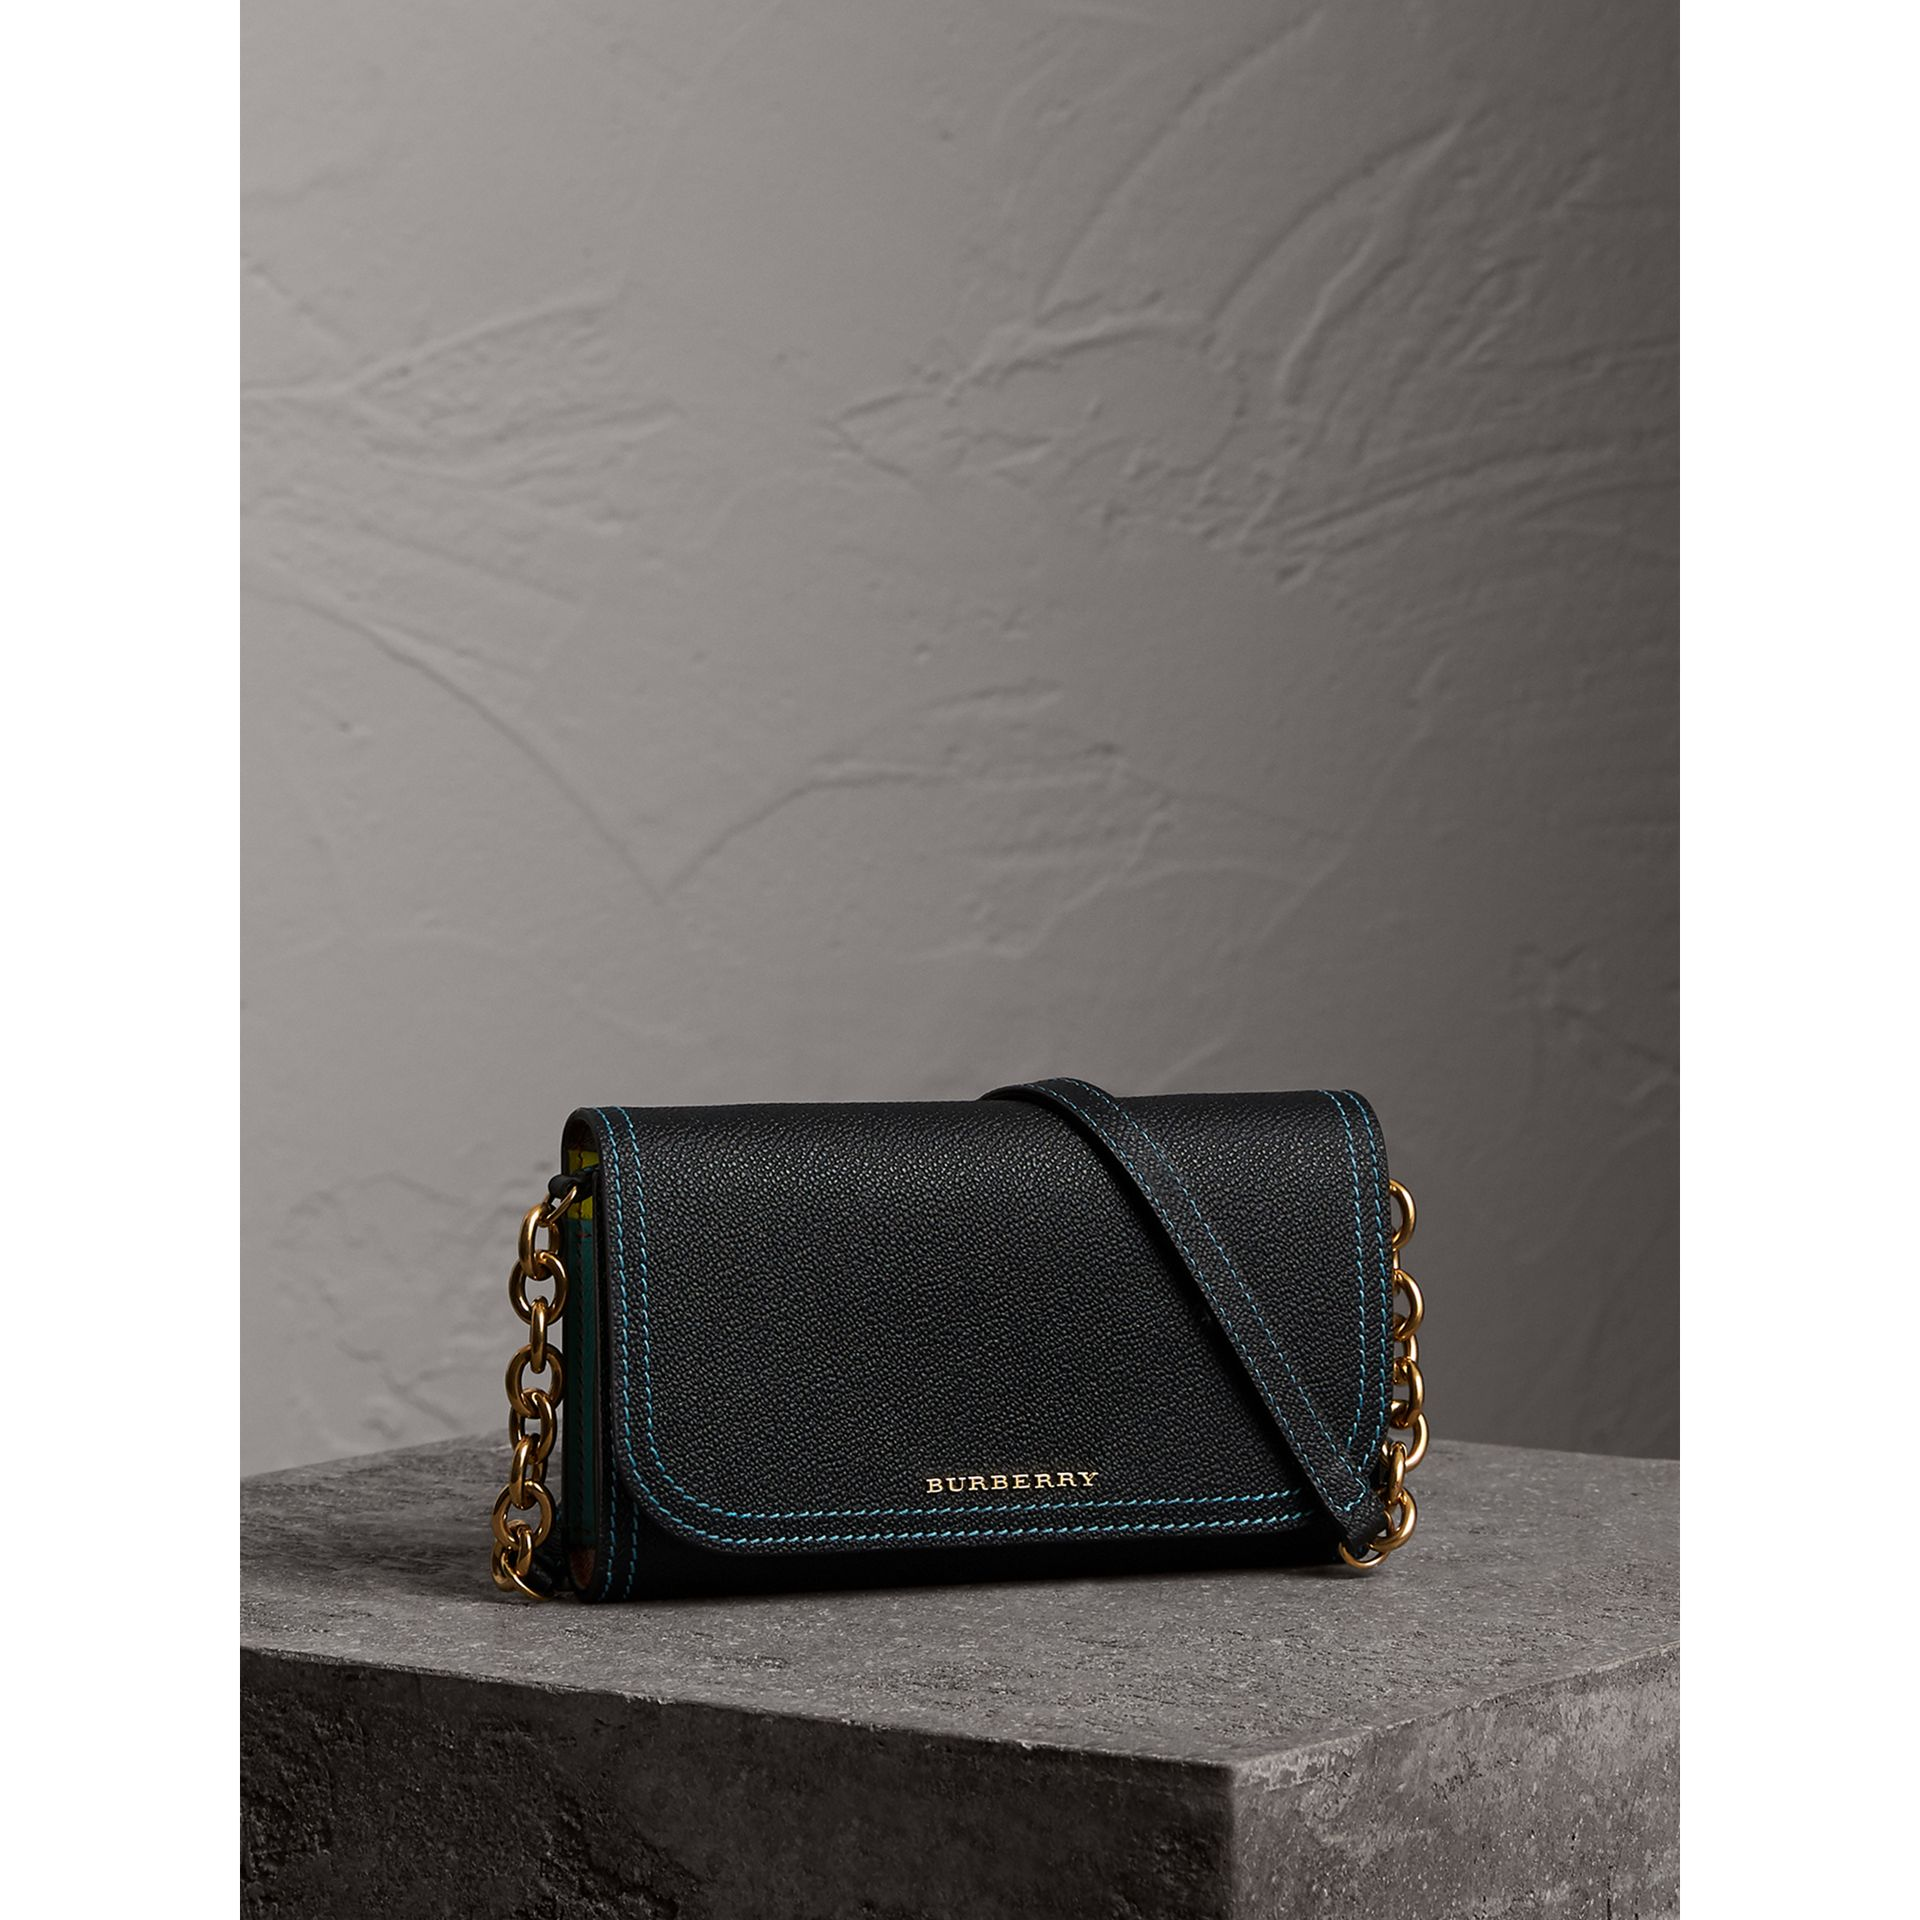 Topstitch Detail Leather Wallet with Detachable Strap in Black/multicolour - Women | Burberry - gallery image 1